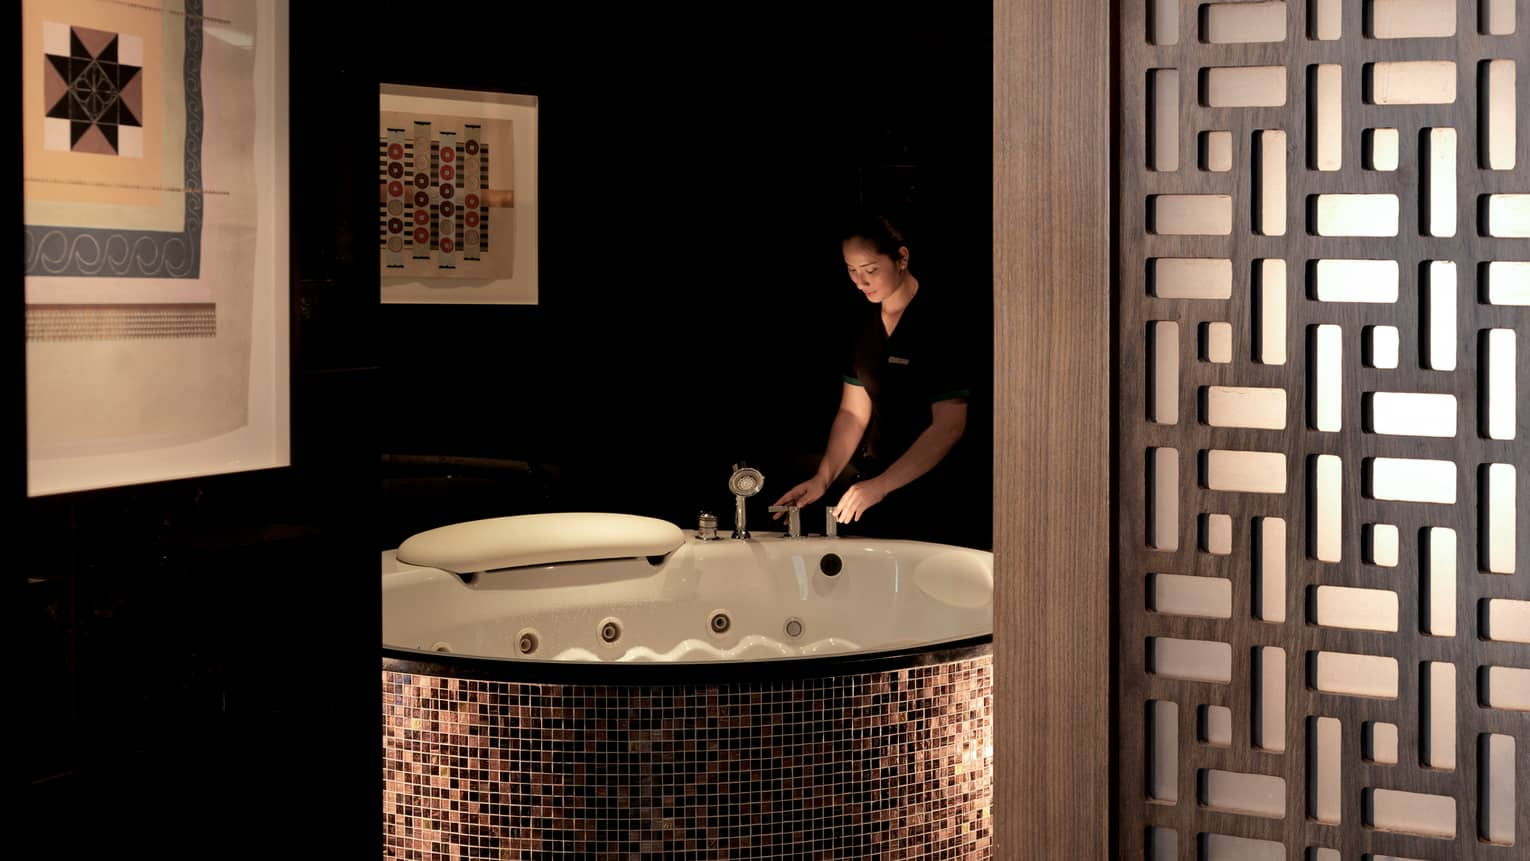 Woman holds taps of large round bathtub with tiles in dimly-lit spa room with wood room divider